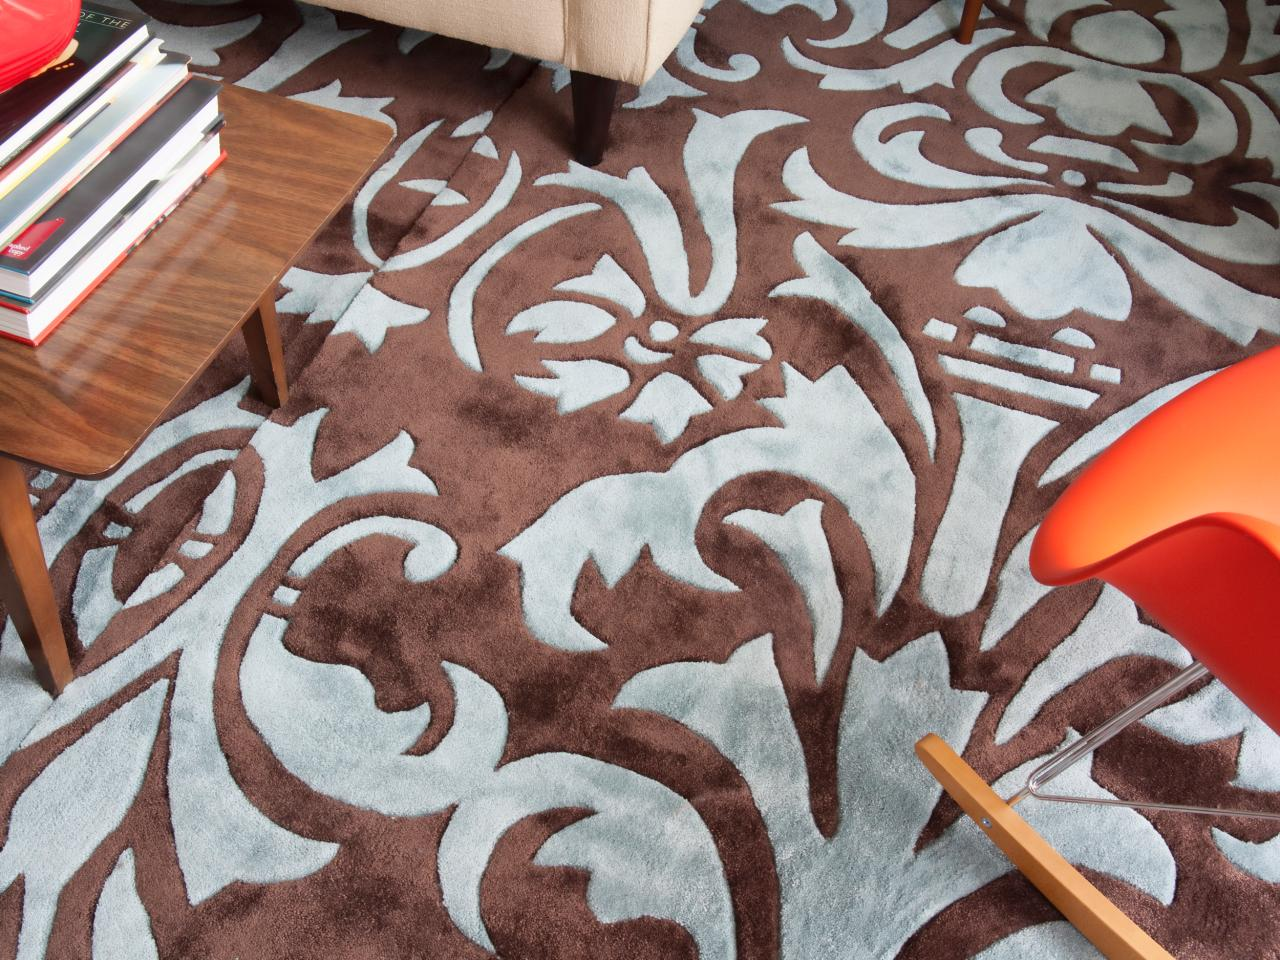 scatter rugs how to make one large custom area rug from several small ones RMGPILI